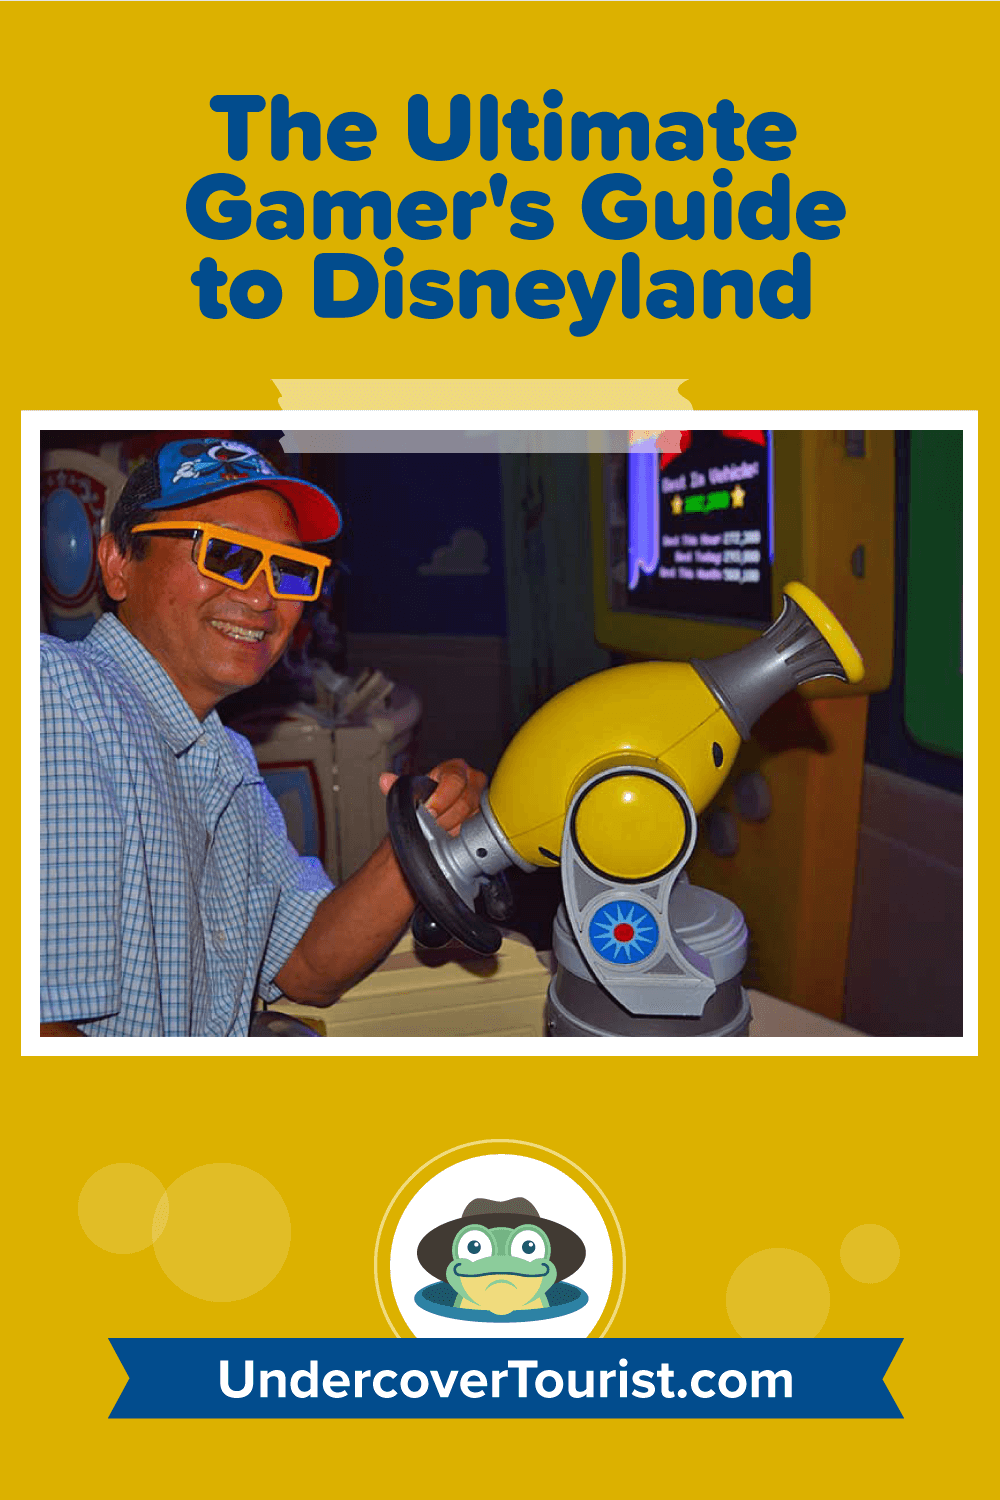 The Ultimate Gamer's Guide to Disneyland - Pinterest